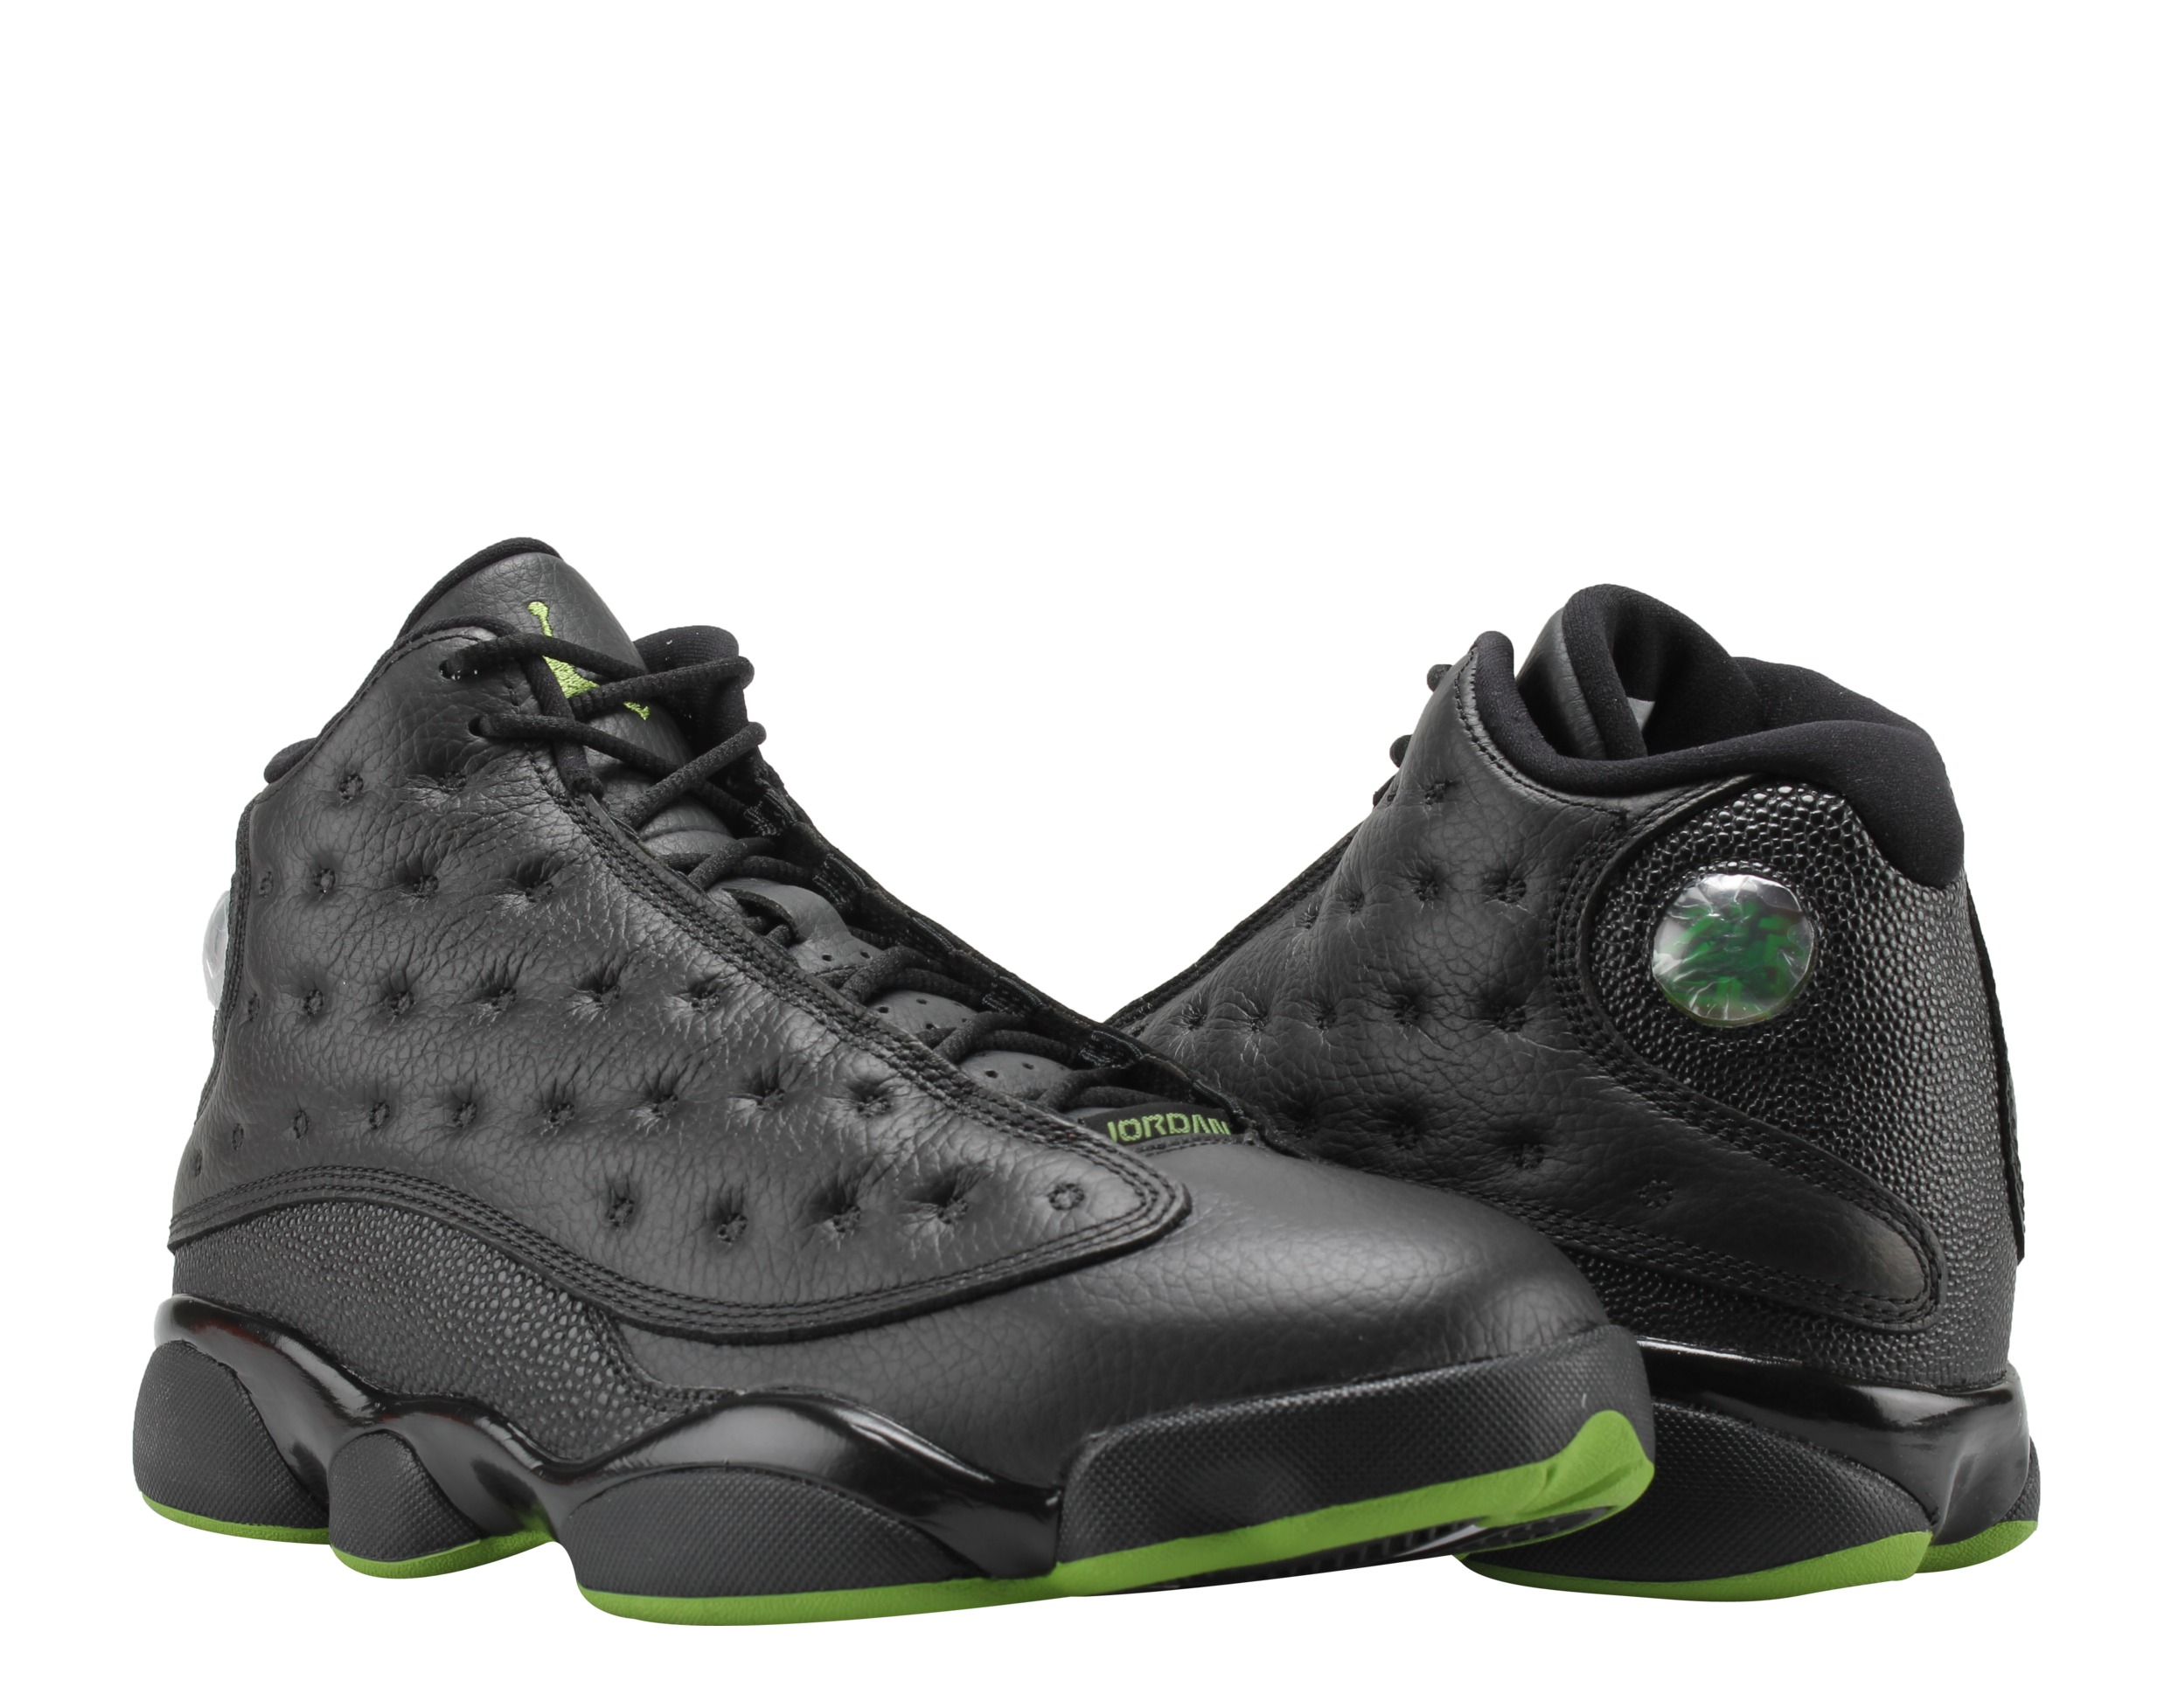 best sneakers 9b387 1147e ... authentic nike air jordan 13 retro black altitude green mens basketball  shoes 414571 042 2bb23 f8800